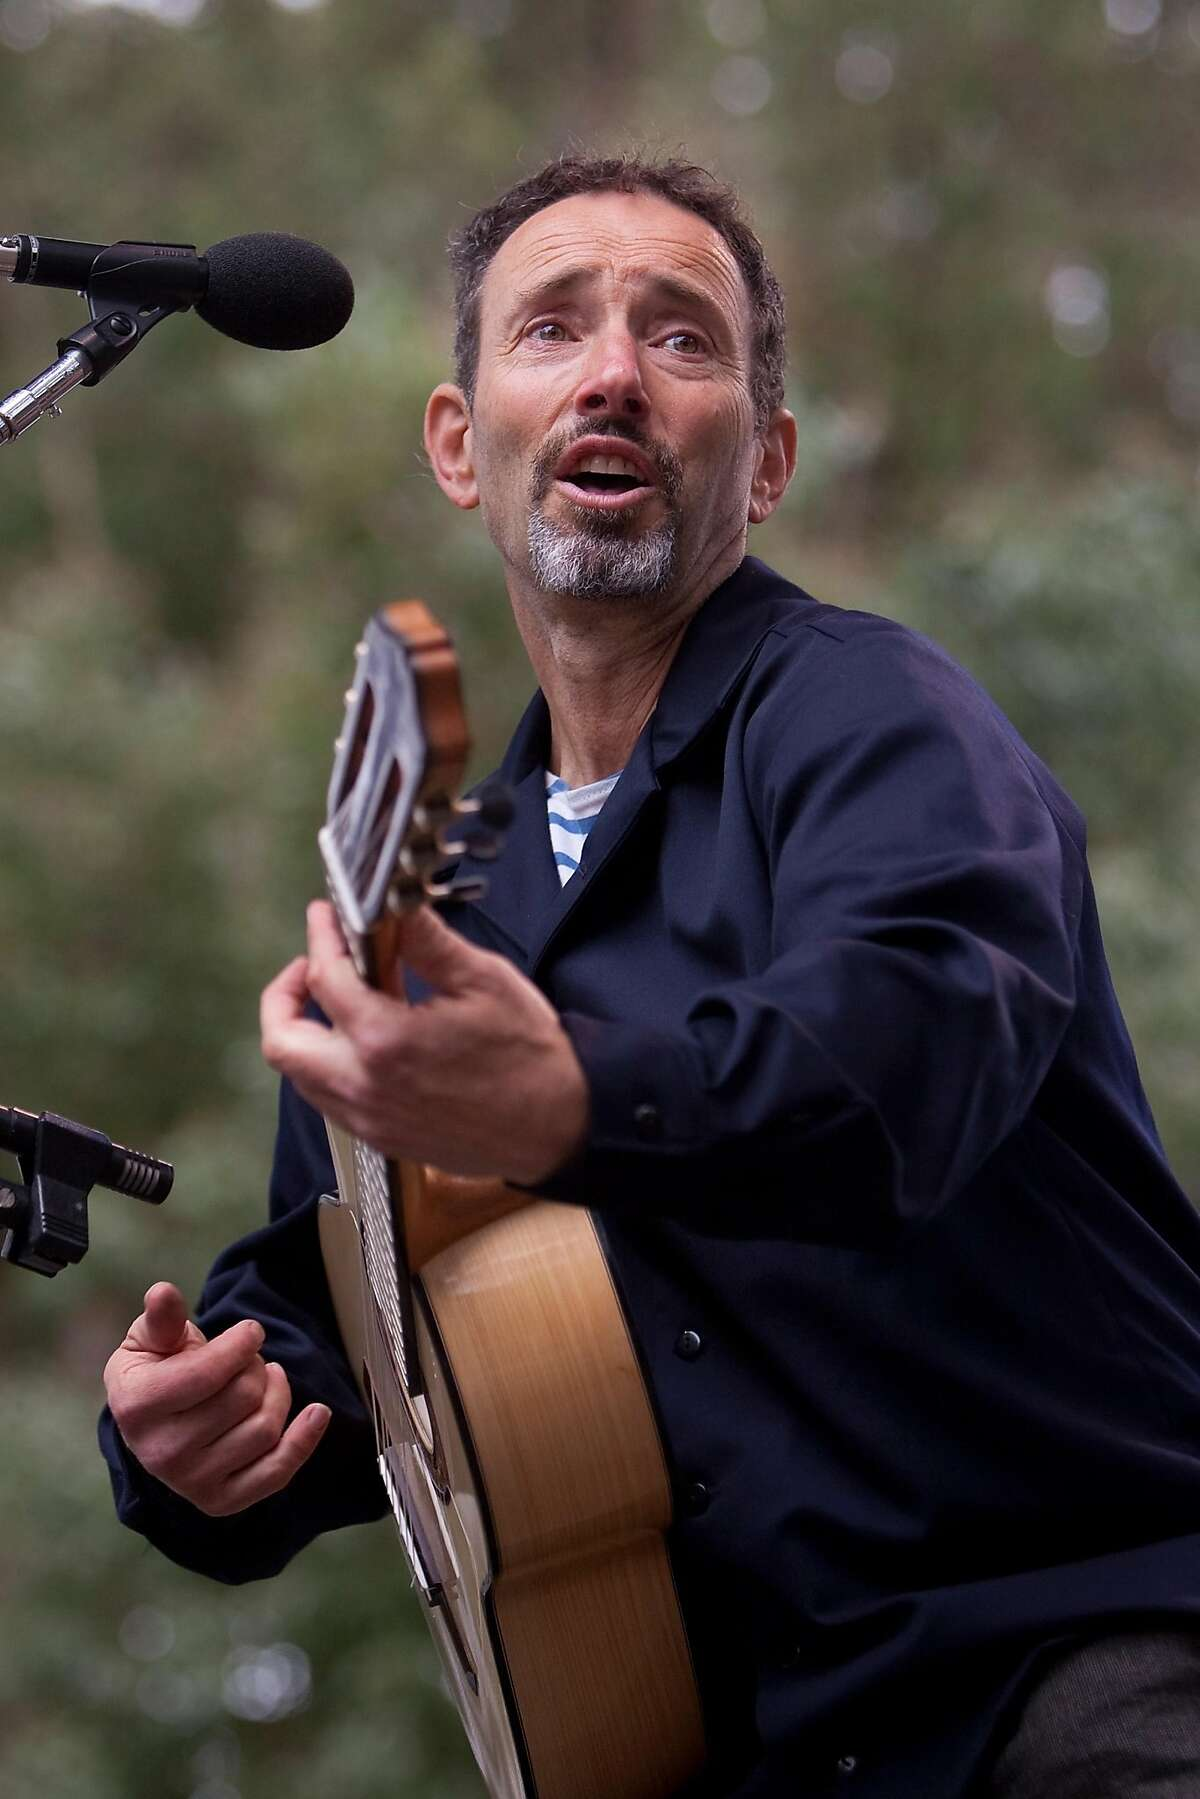 Jonathan Richman performs on the Rooster stage on day two of the Hardly Strictly Bluegrass Festival in San Francisco's Golden Gate Park on Saturday.